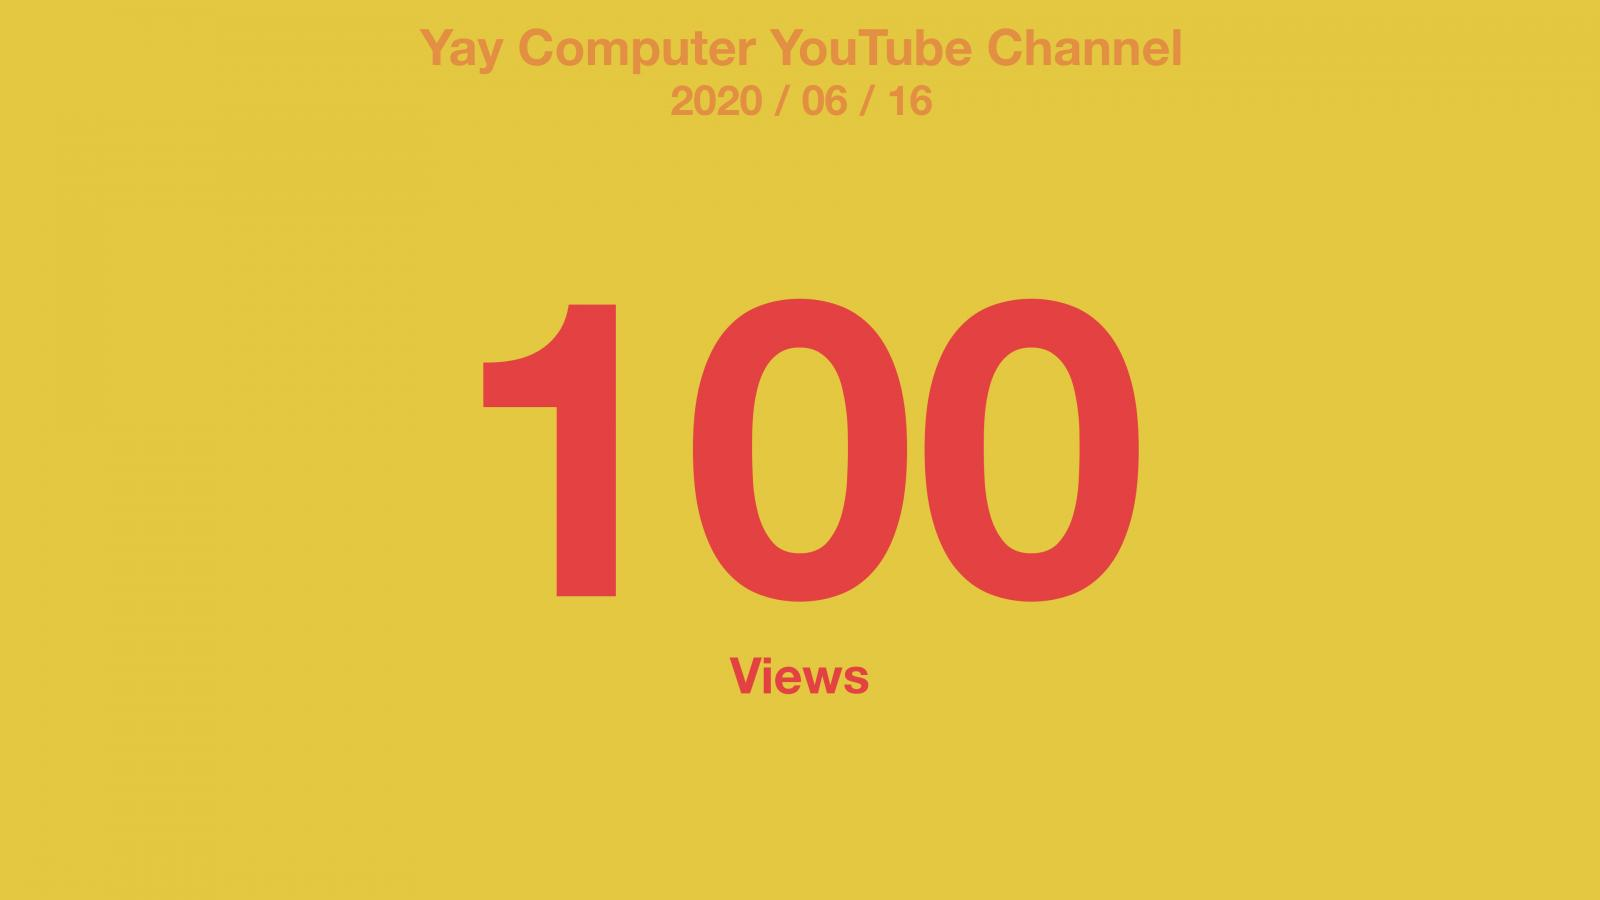 Yay Computer YouTube Channel 100 Views